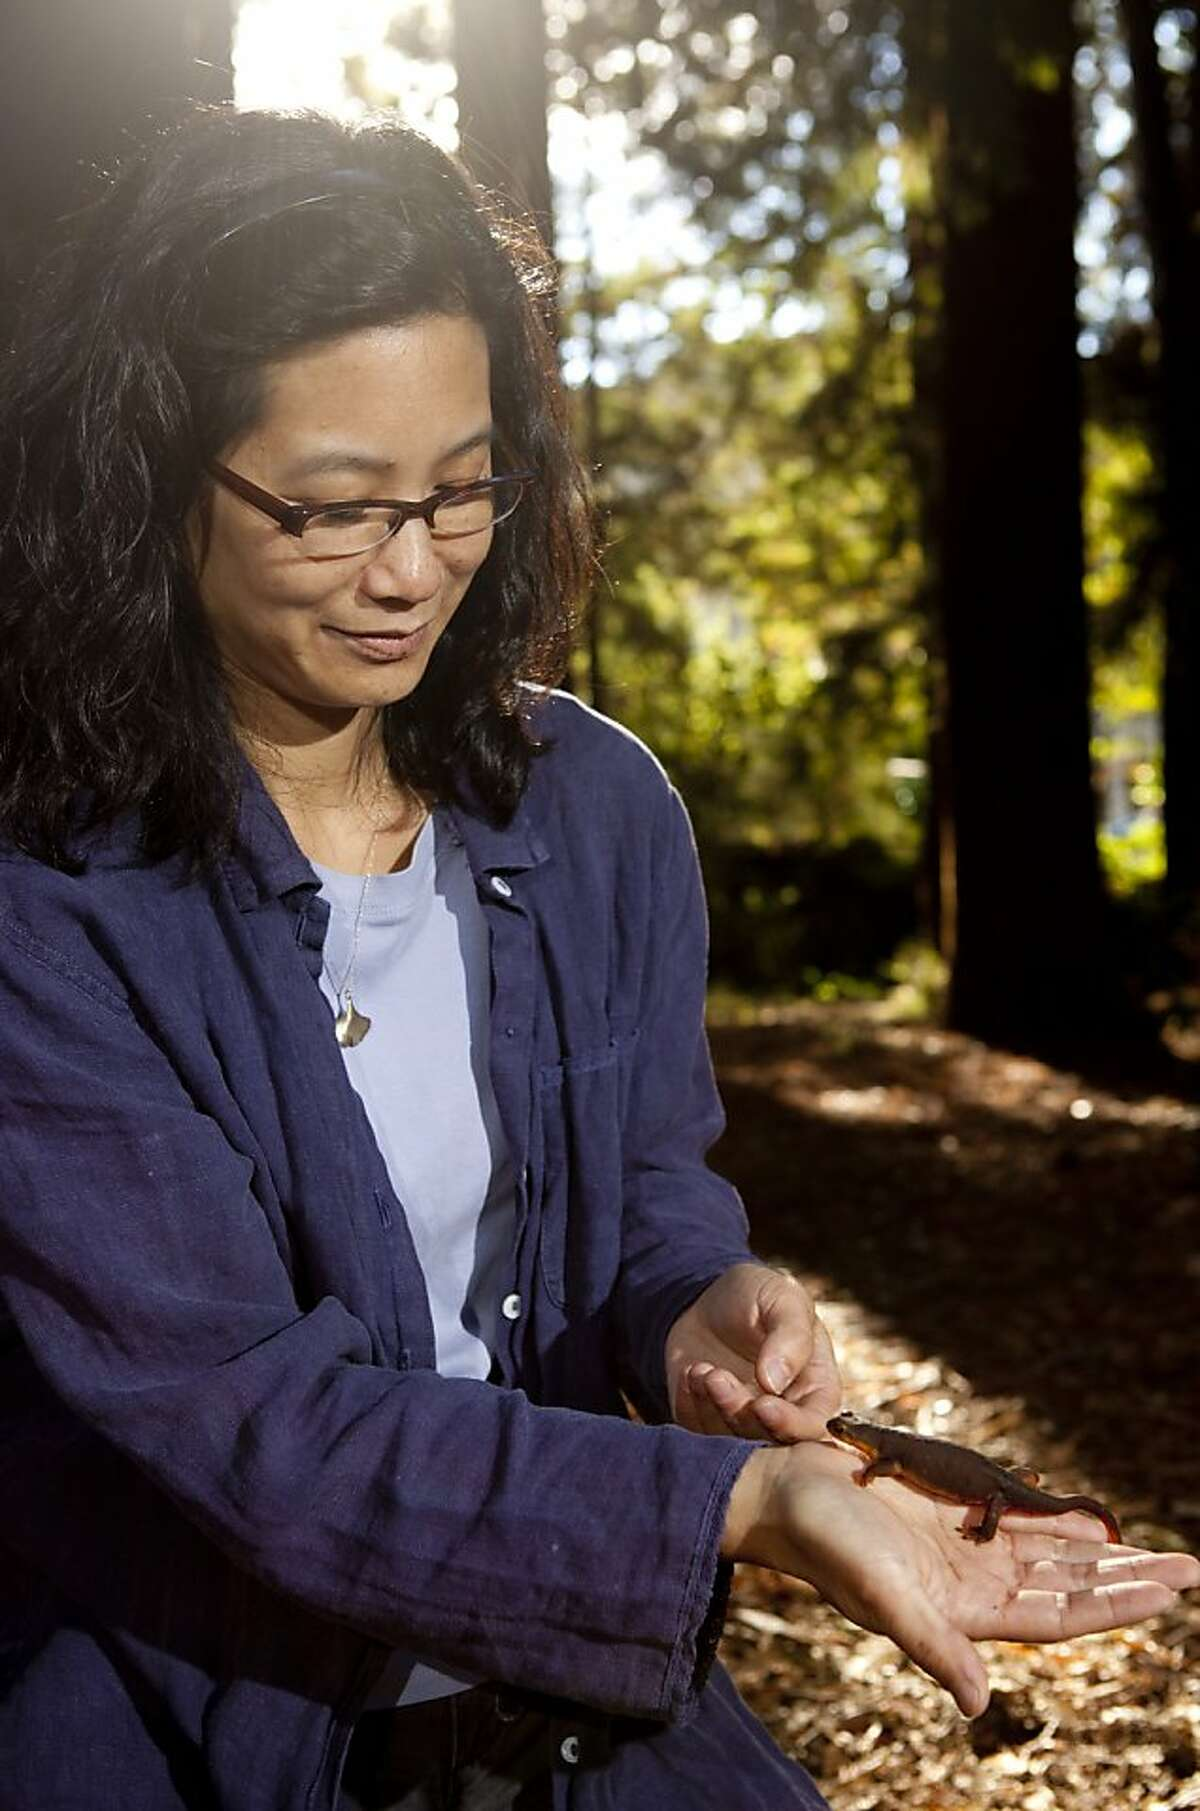 Michelle Koo, UC Berkeley research scientist on the Amphibia Web Team at the Museum of Vertebrae Zoology, poses with a California Newt on Thursday, September 26, 2011 in Berkeley, Calif. Koo is part of the Global Amphibian and Reptile Bioblitzes which is powered by iNaturalist.org.